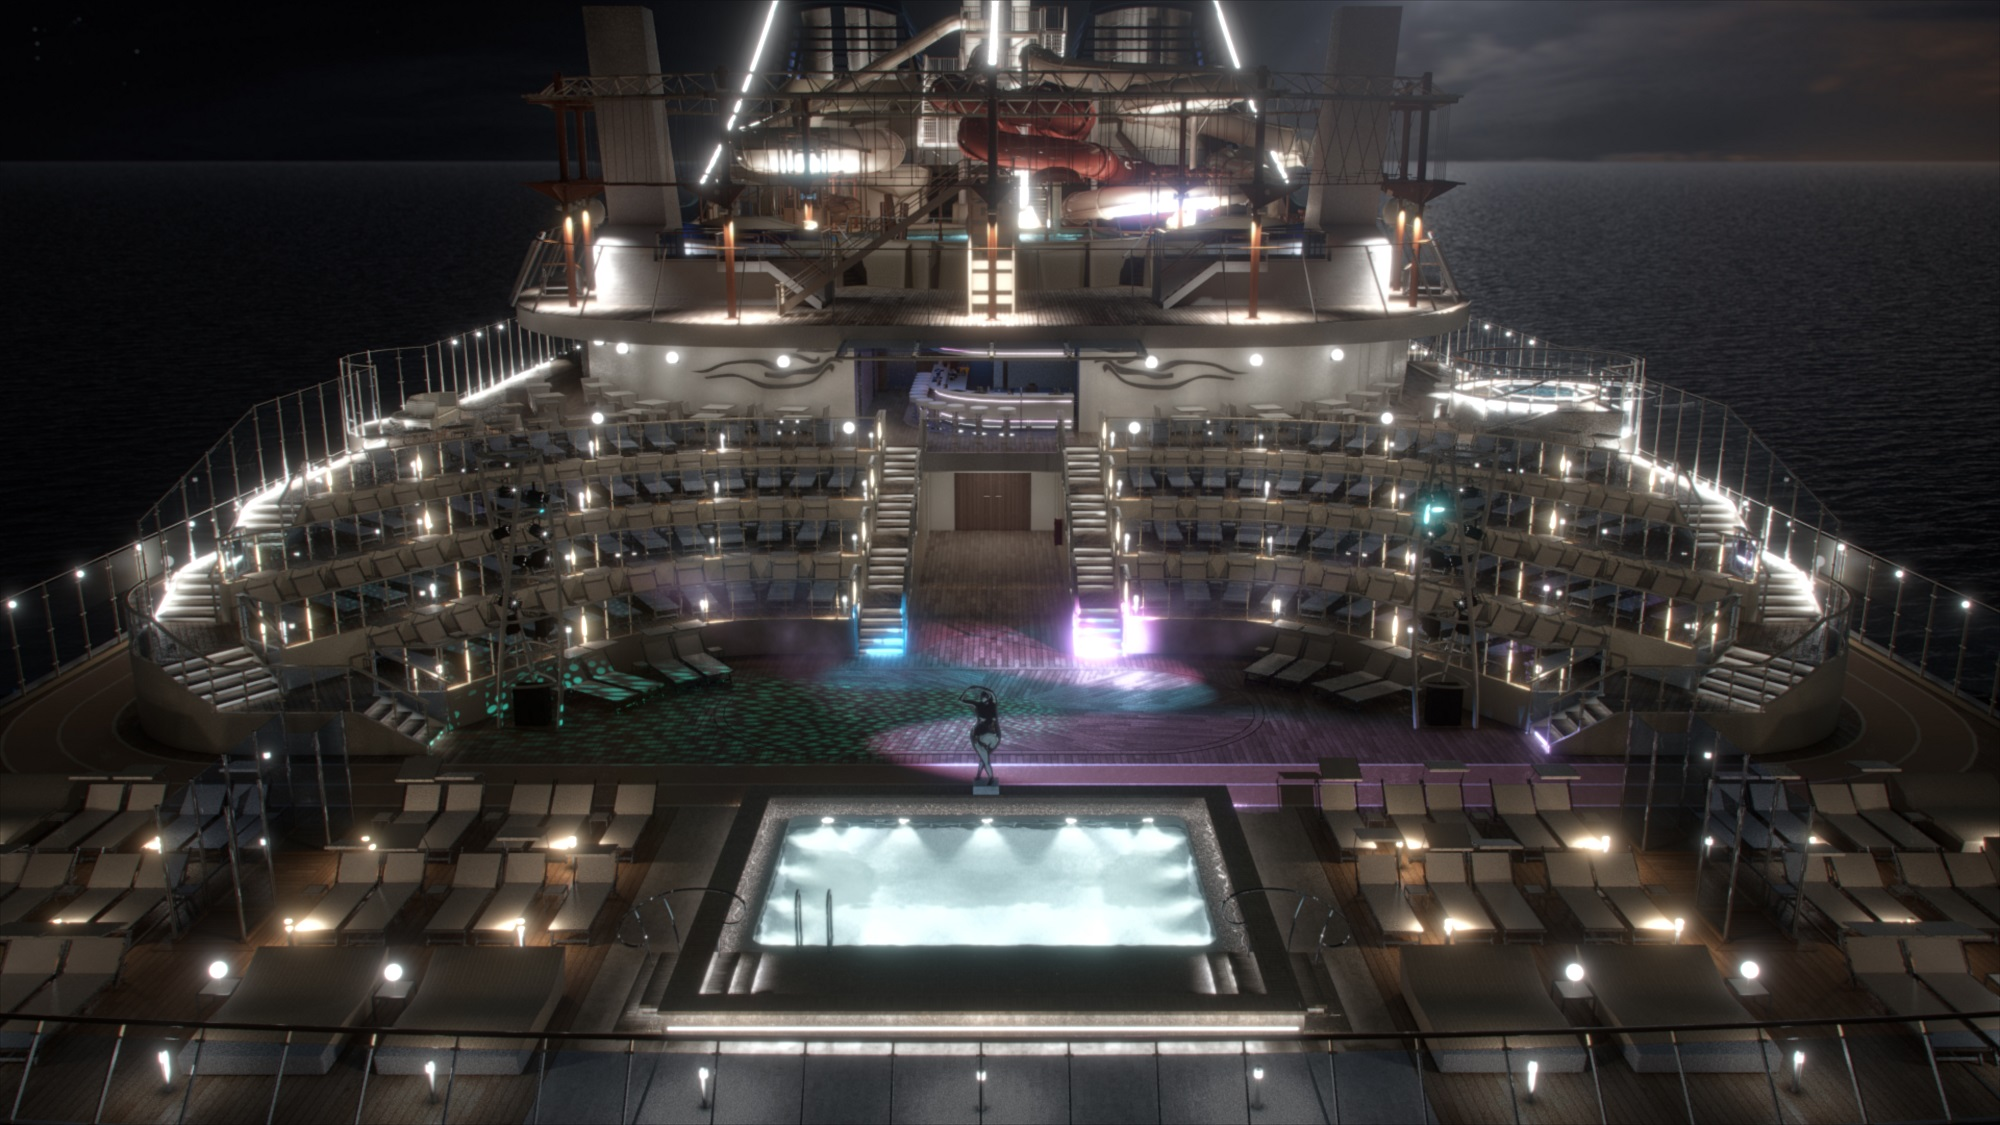 Best Cruise Ships 2019 The 10 best new cruise ships for 2019 | CNN Travel